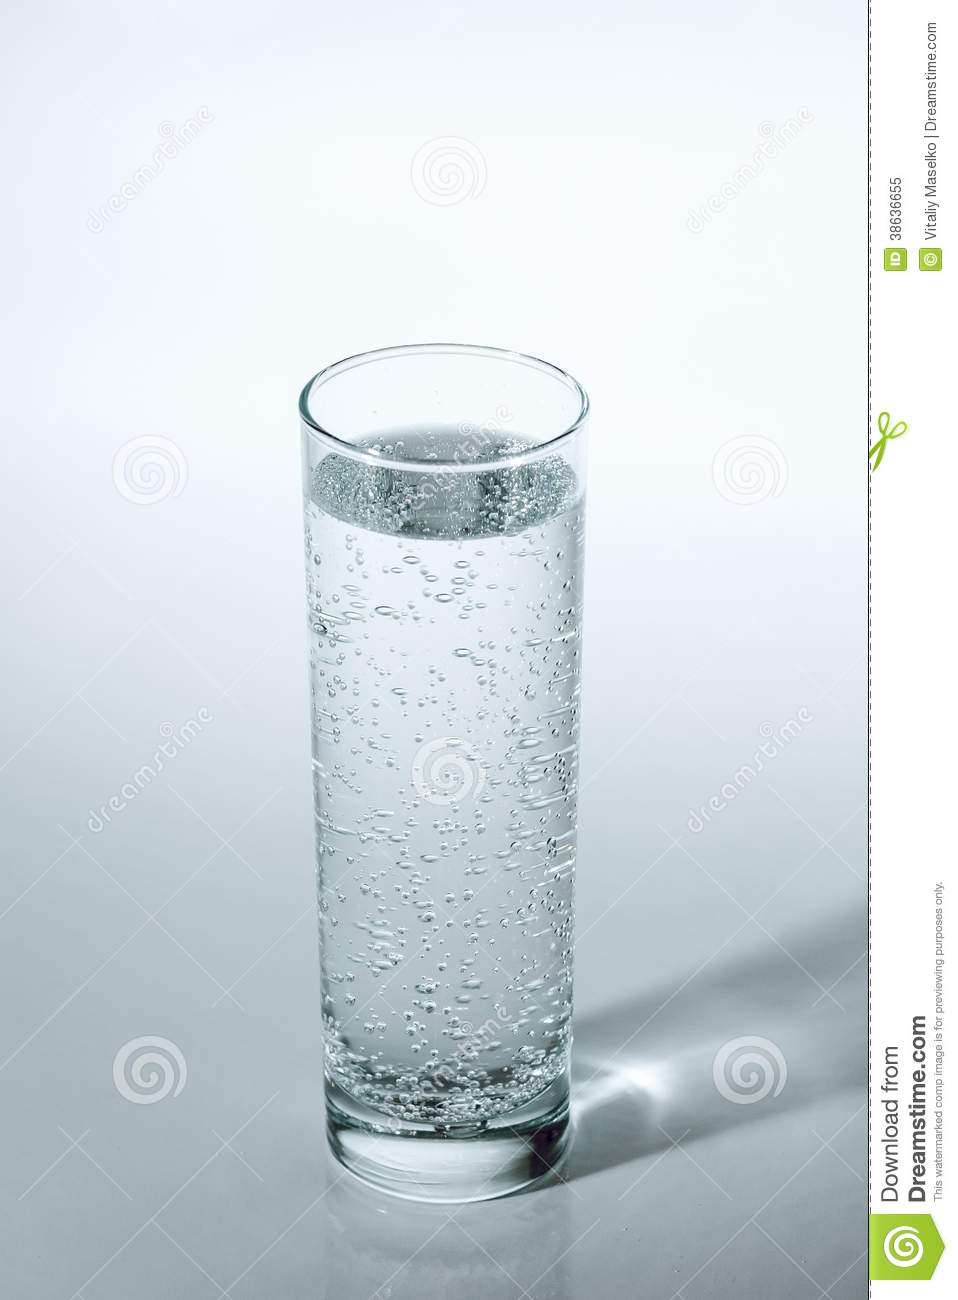 glass of soda water royalty free stock photo image 38636655. Black Bedroom Furniture Sets. Home Design Ideas